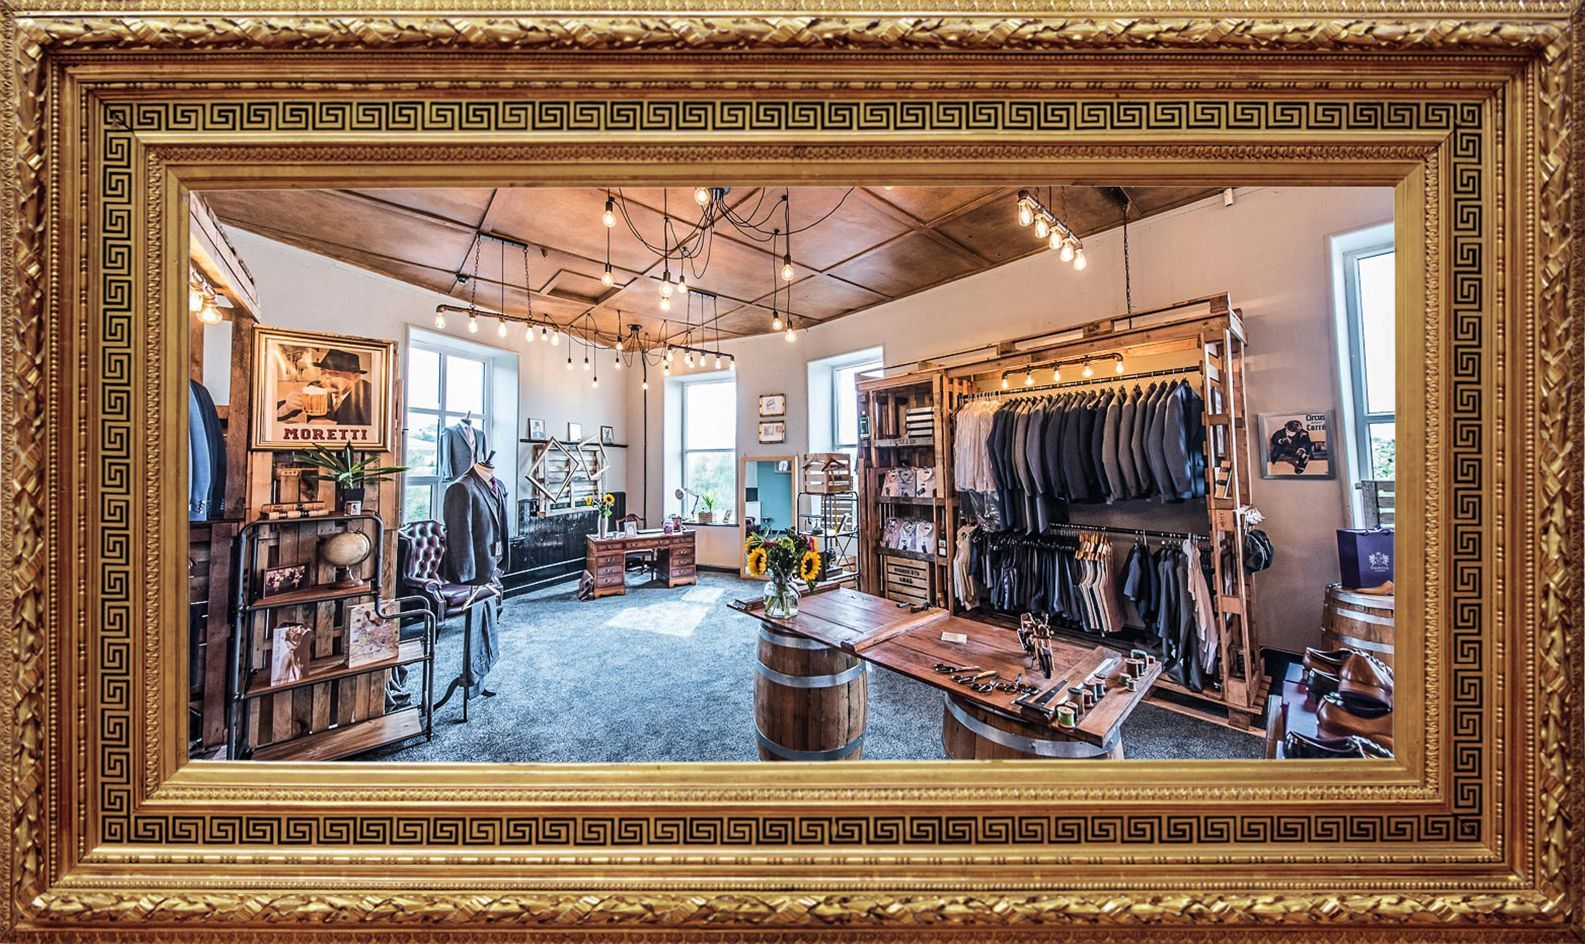 The Bridgewater Menswear Clothing